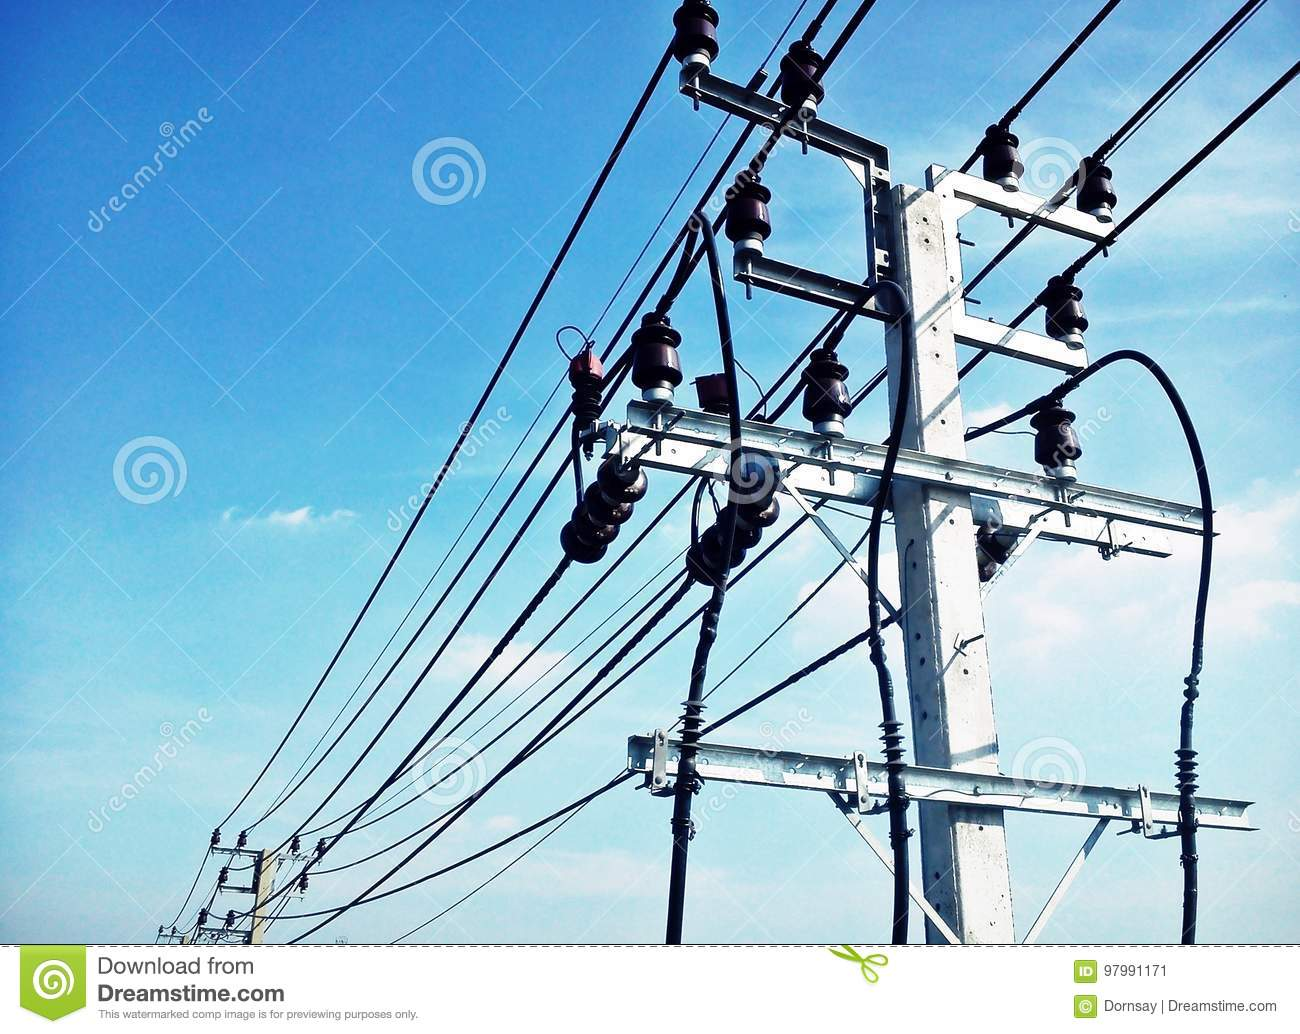 High Voltage Electricity Wires And Poles Stock Photos Image Wiring 800pxboeboeledswitchledbreadboardjpg Electric Pole Connect To The On Blue Sky Rh Dreamstime Com